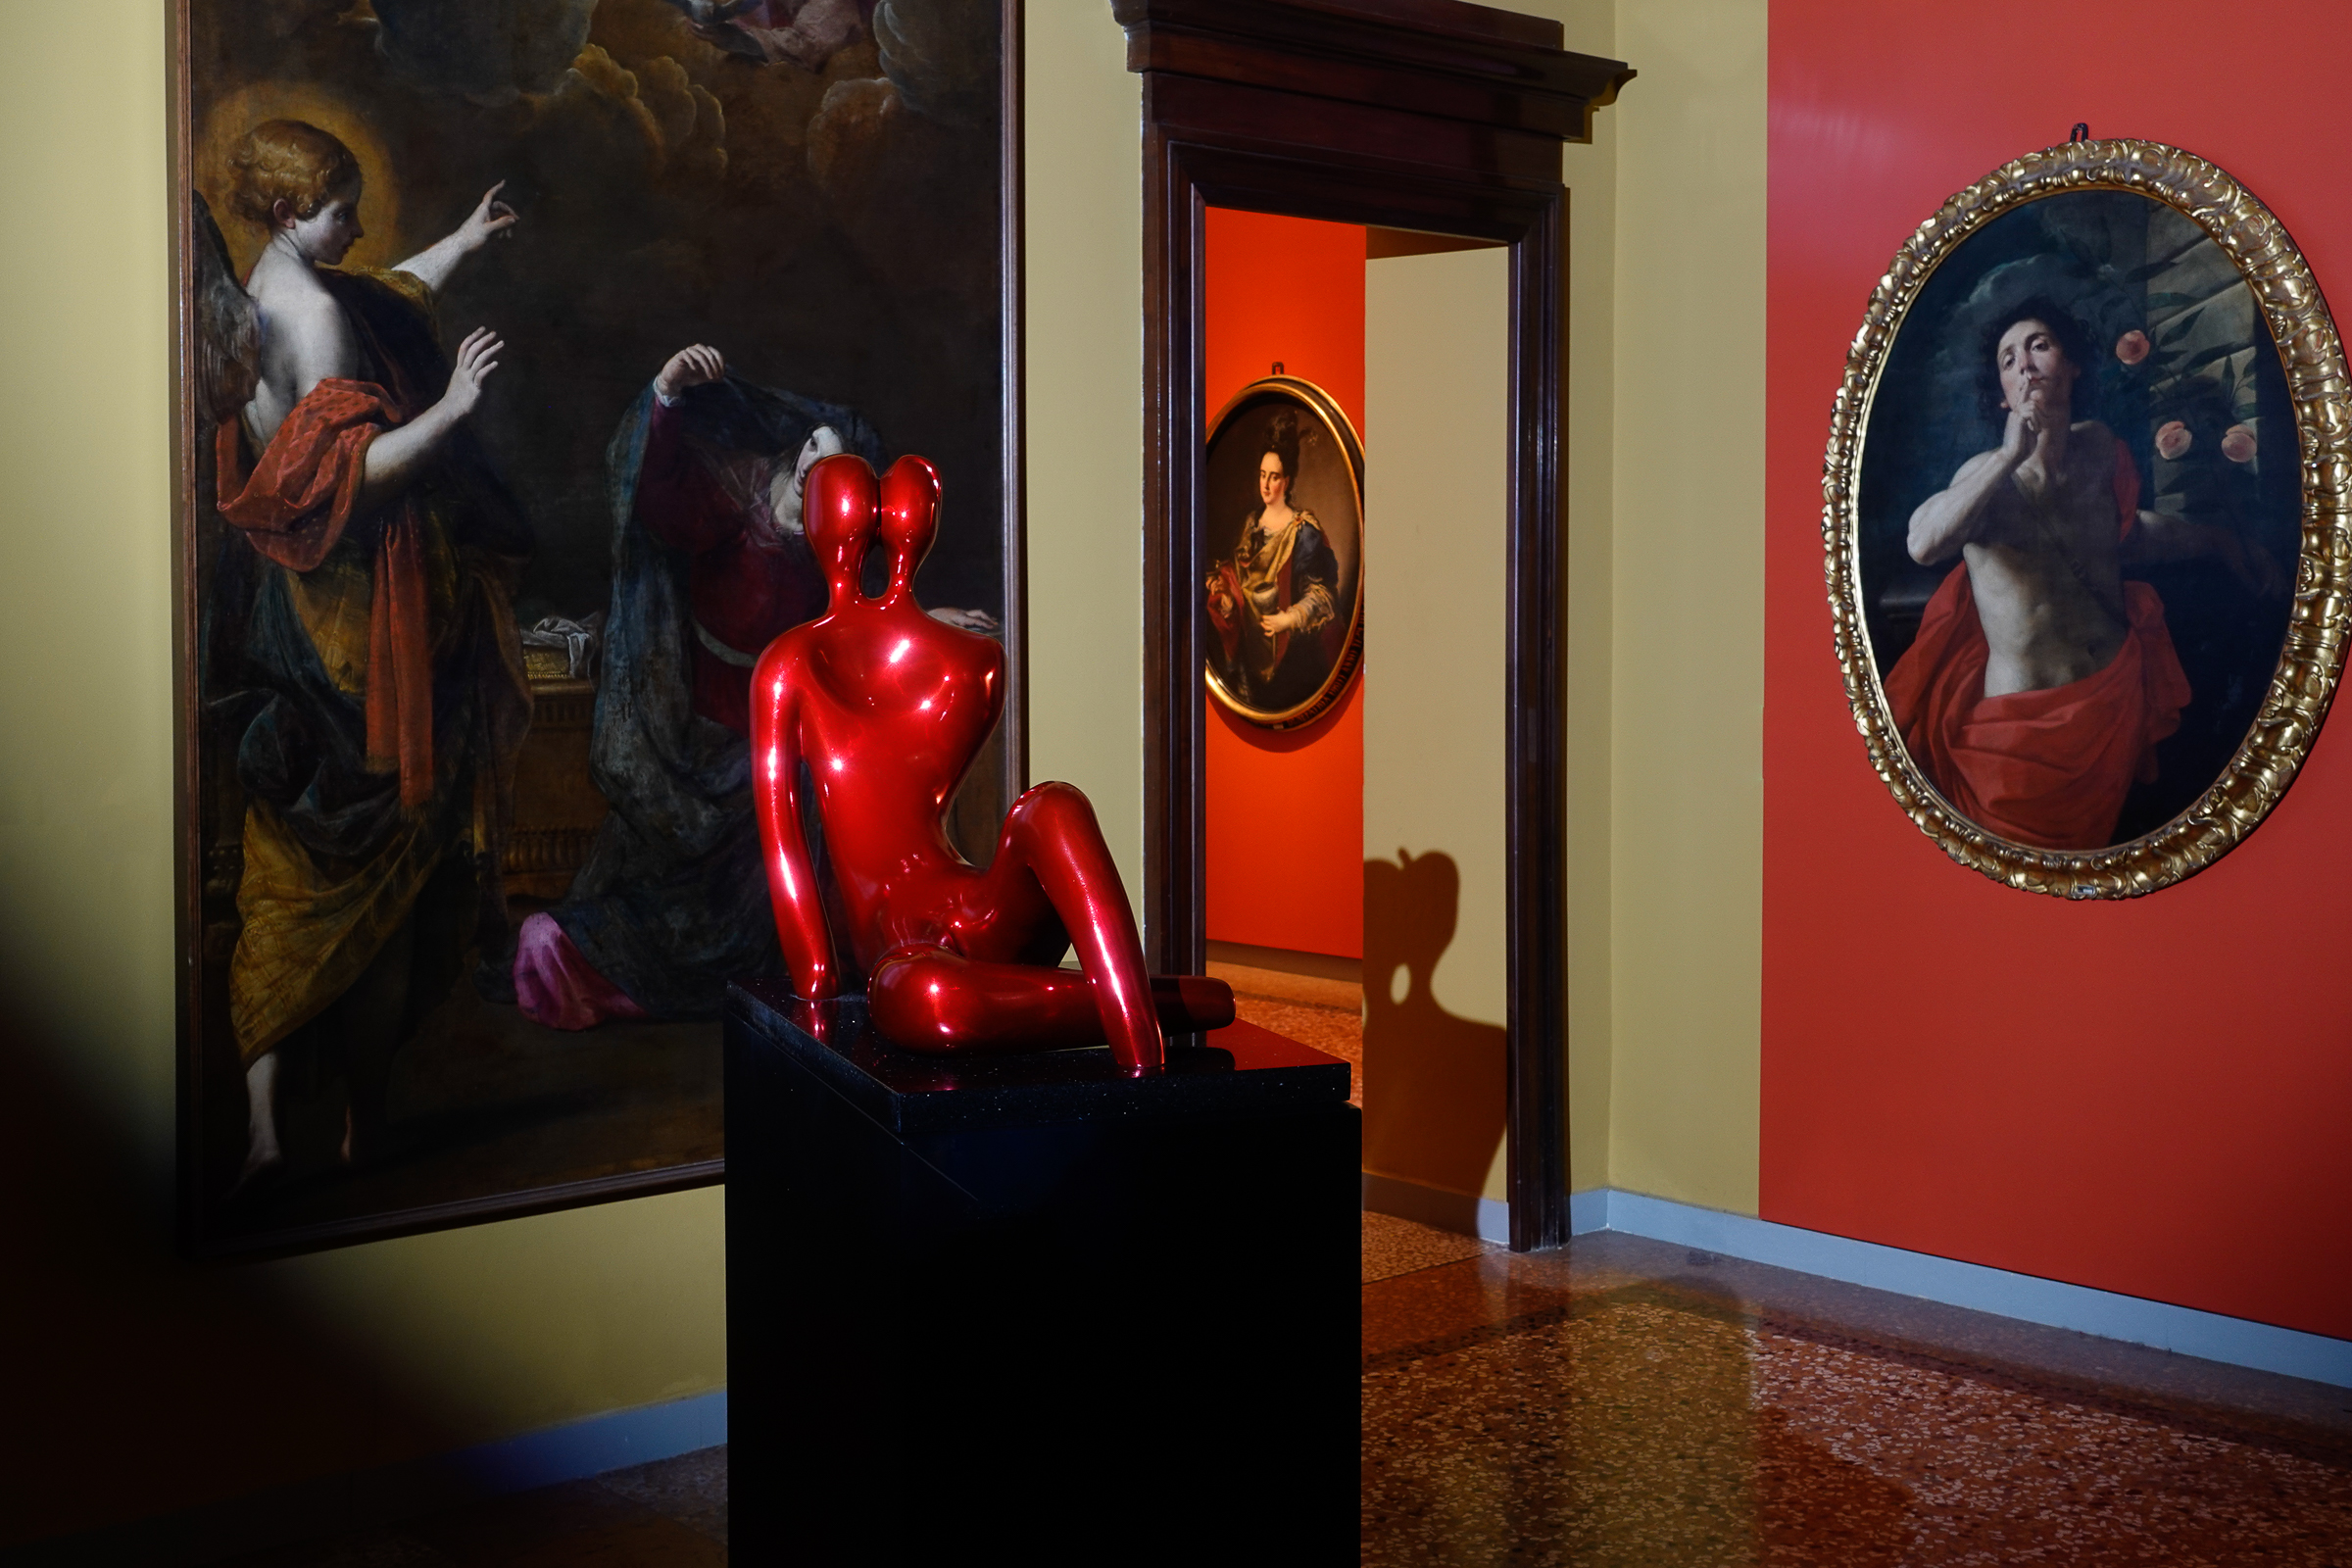 Soulmates 2 in RED, sculpture by Beatriz Gerenstein at the Museum La Quadreria in Bologna Italy